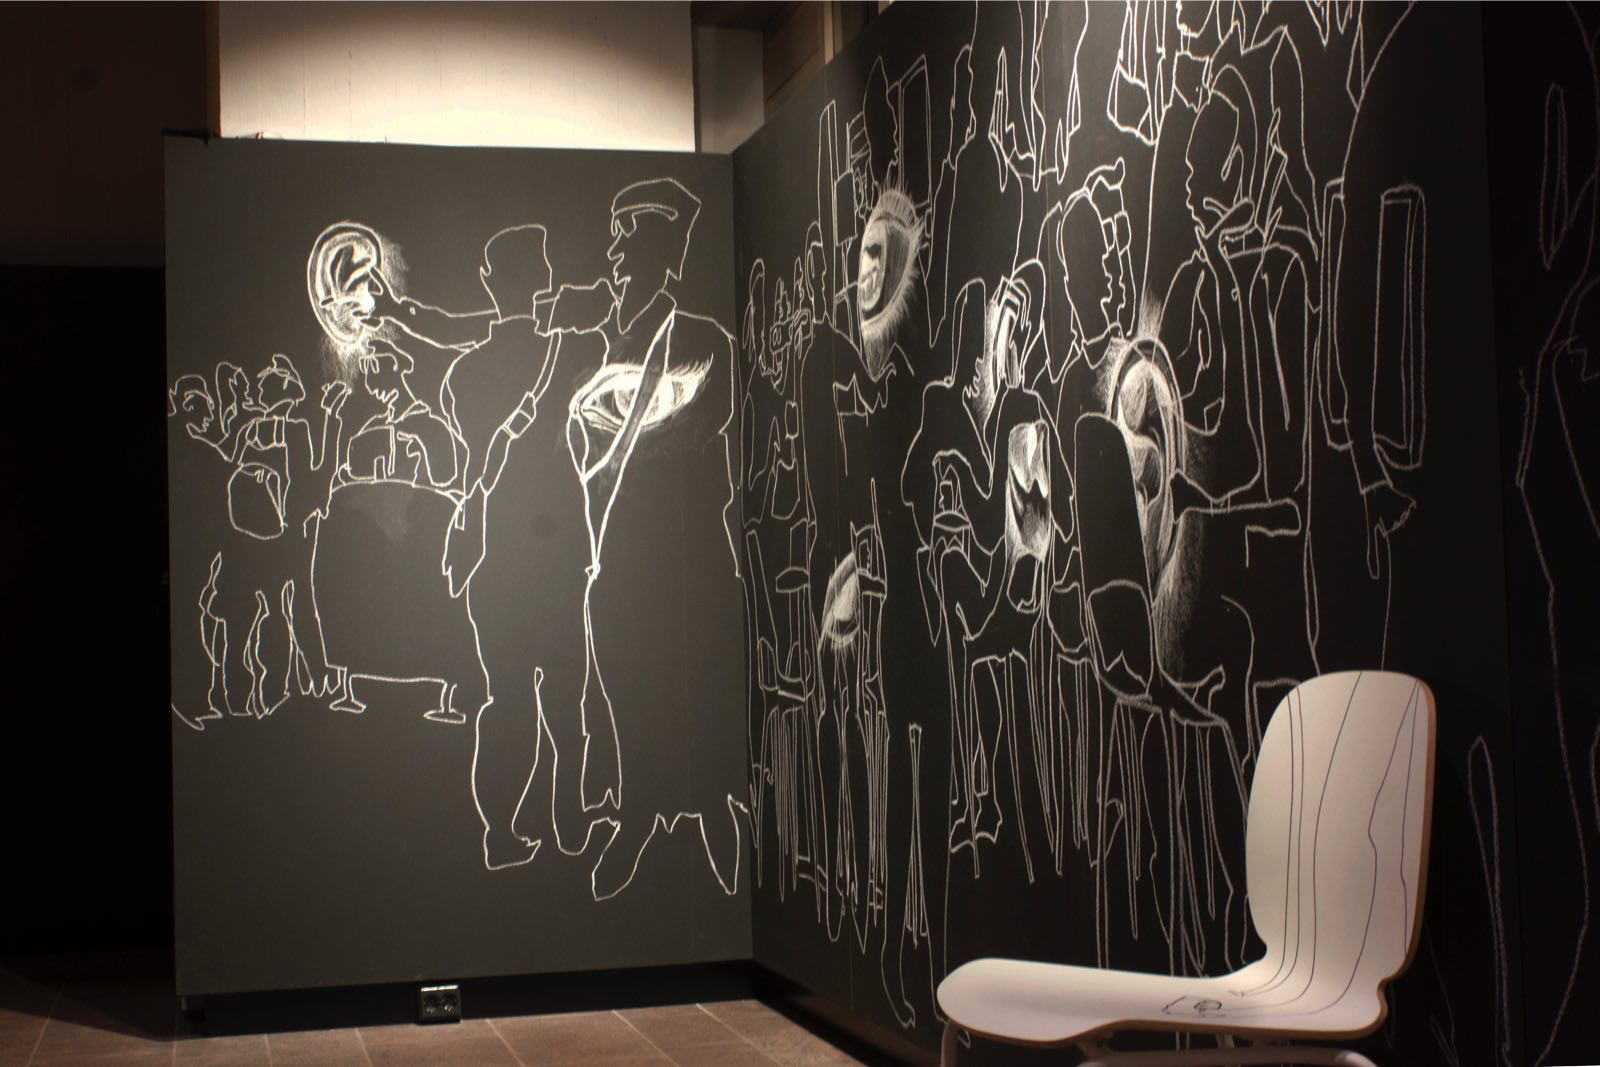 Chair   Connection happens everywhere. People connect with people , with objects, with their own feelings. A chair can be connected through human activity. Here, a white chair interacts with the wall drawing, illustrating the relationship between individuals and objects